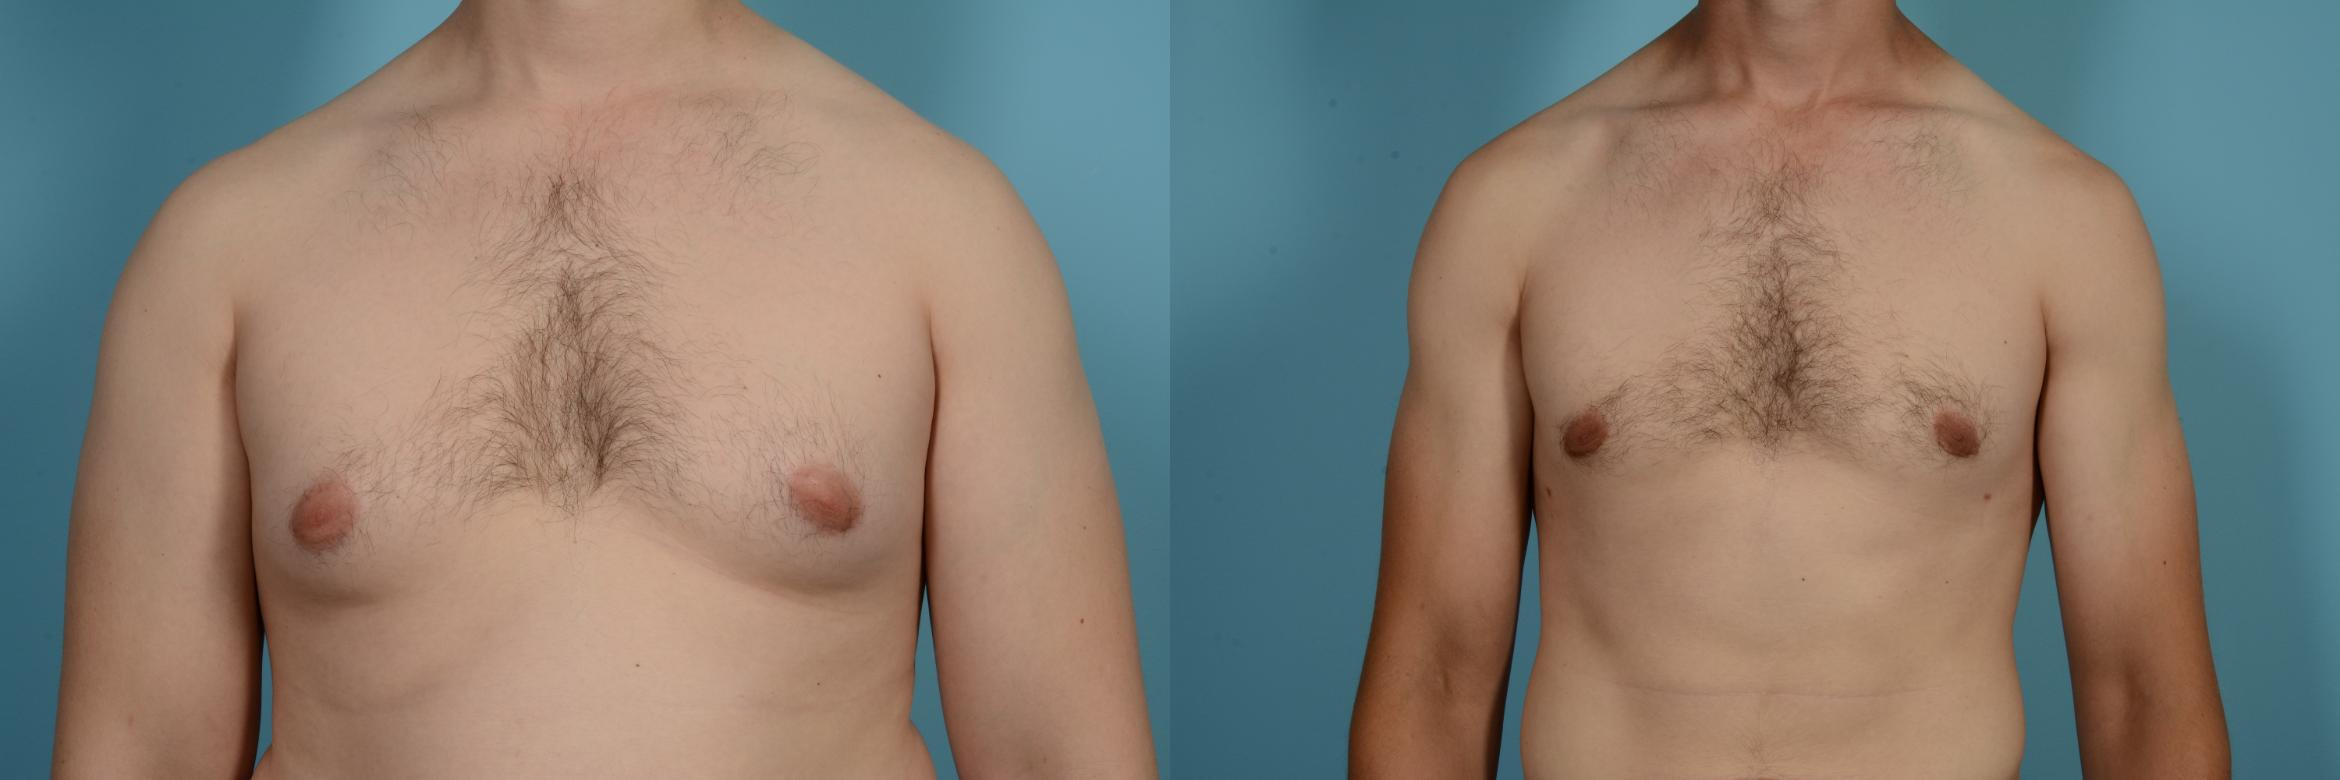 Male Breast Reduction (Gynecomastia) Case 630 Before & After Front | Chicago, IL | TLKM Plastic Surgery